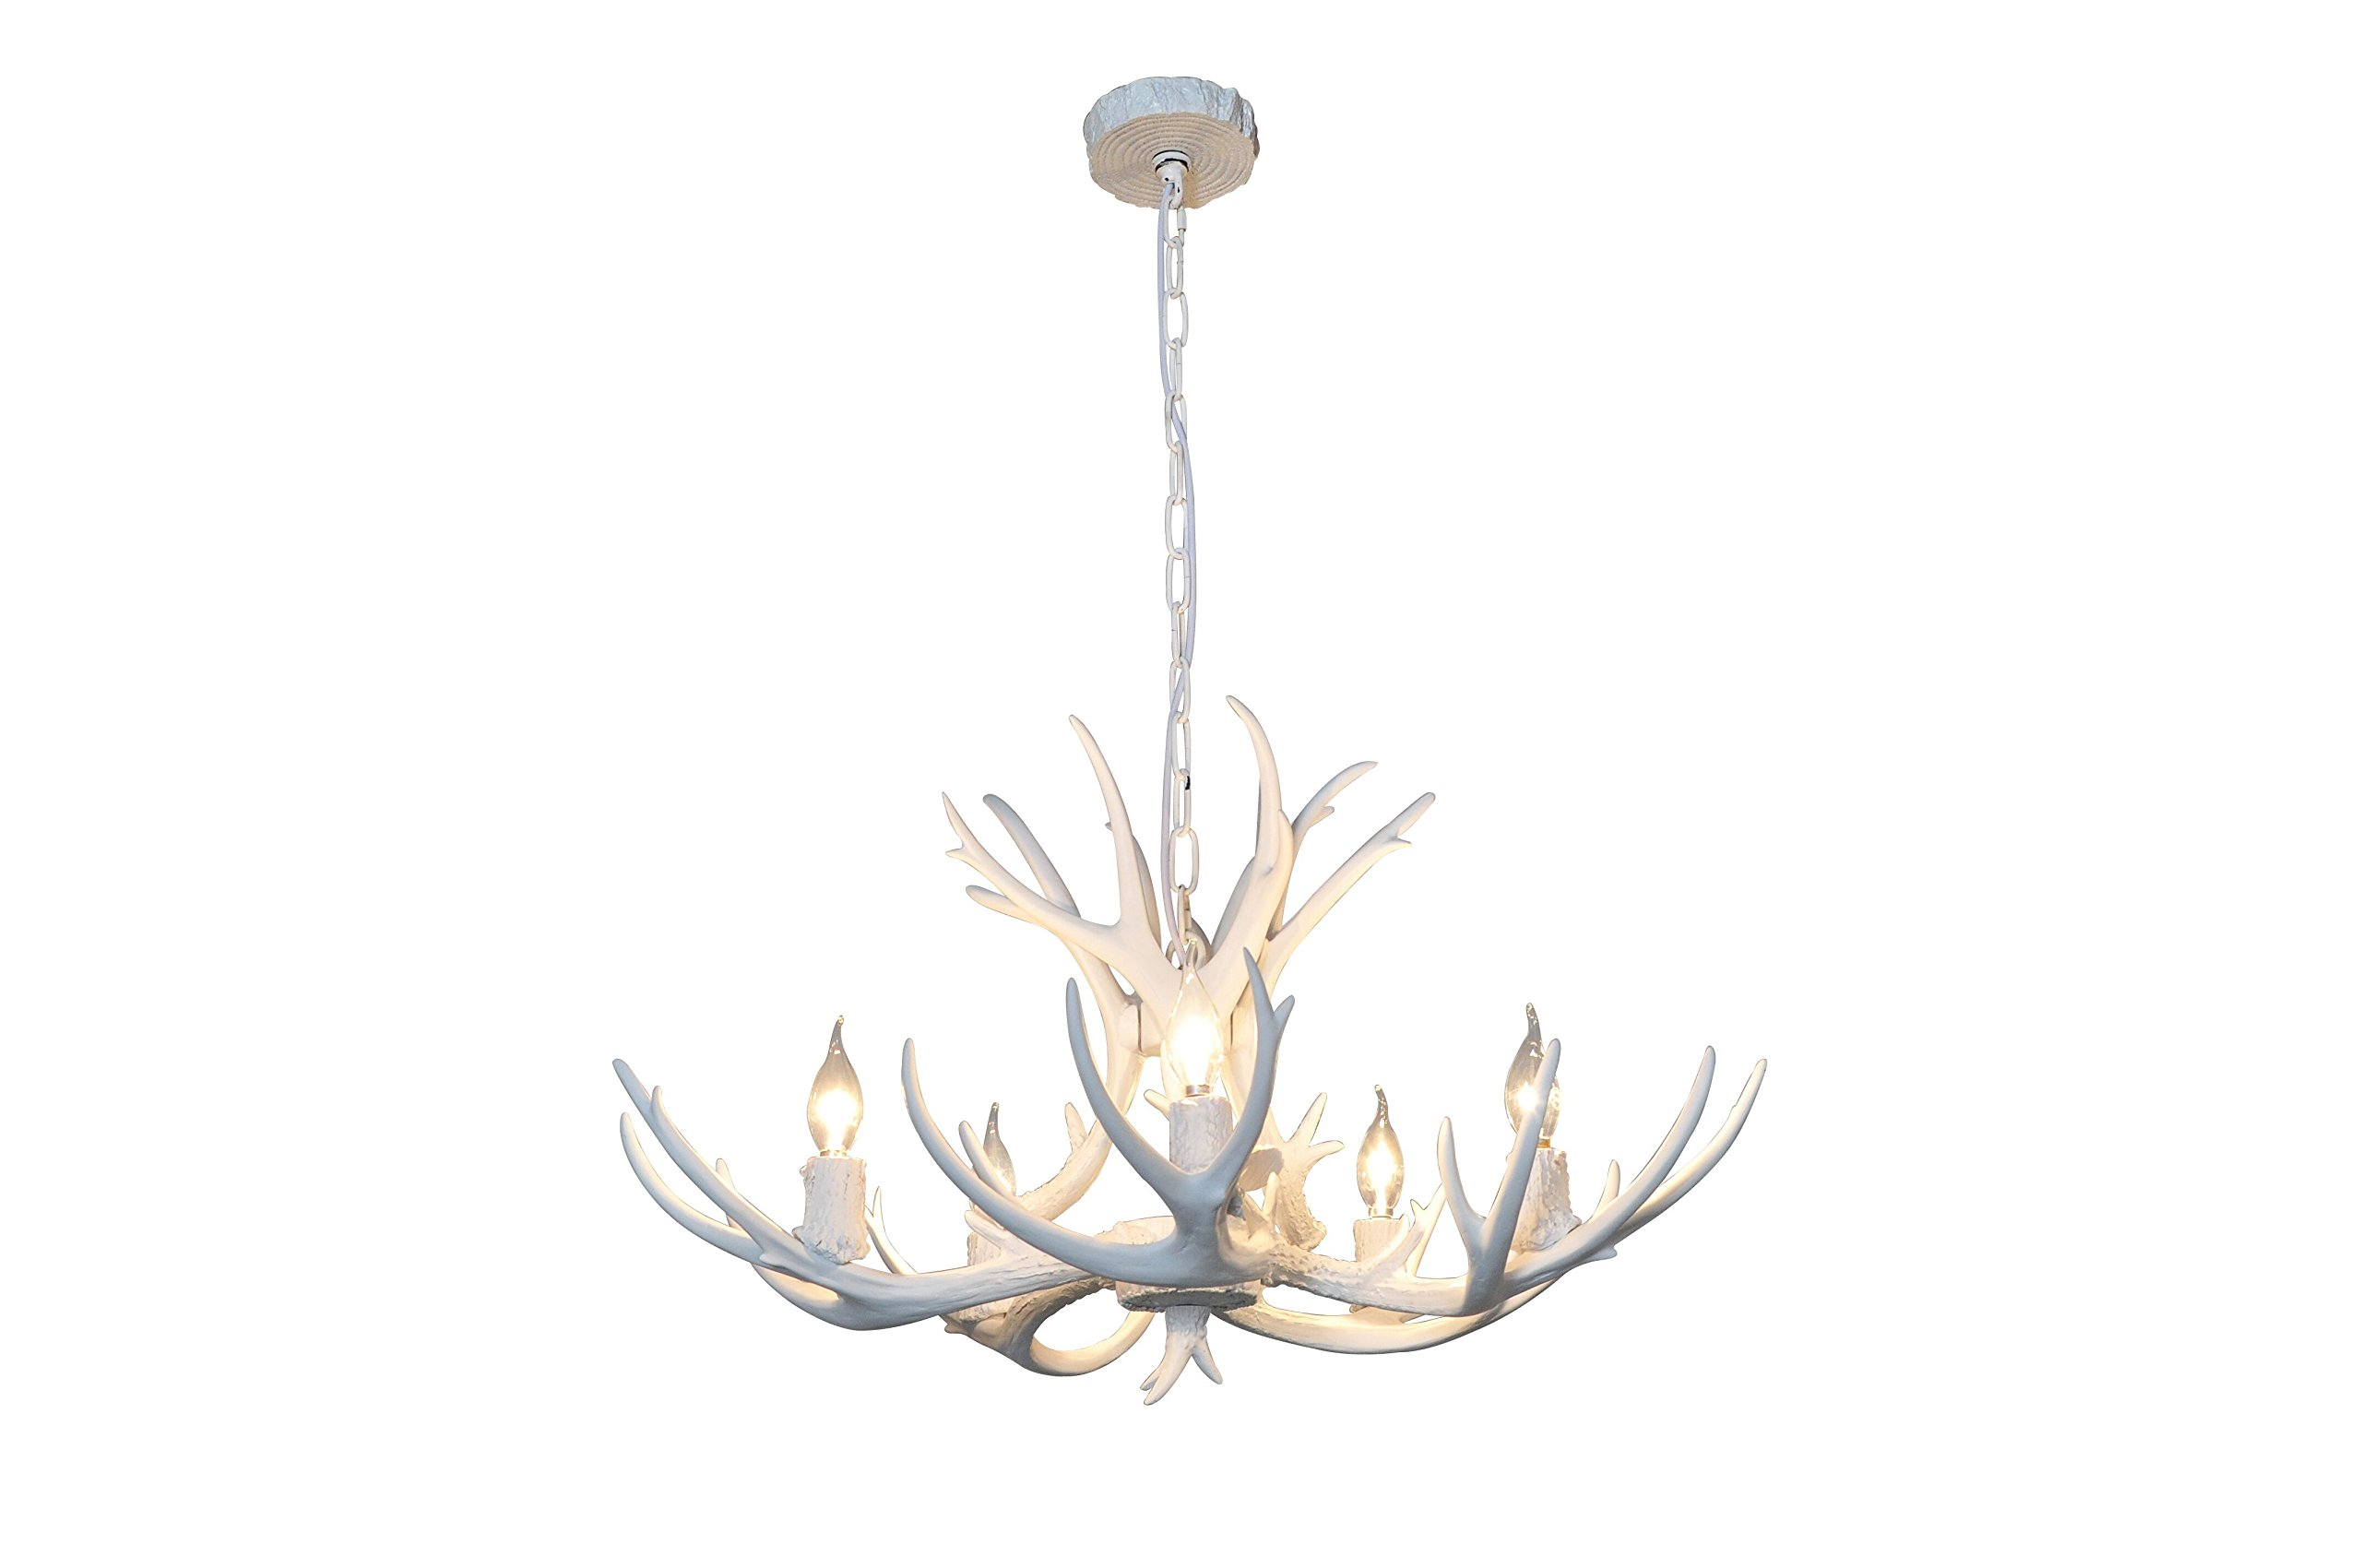 EFFORTINC Resin Antler Chandeliers 5 Light 29.5'' Diameter X 17'' Tall with 4 Feet Matching Chain(Bulbs Not Included)